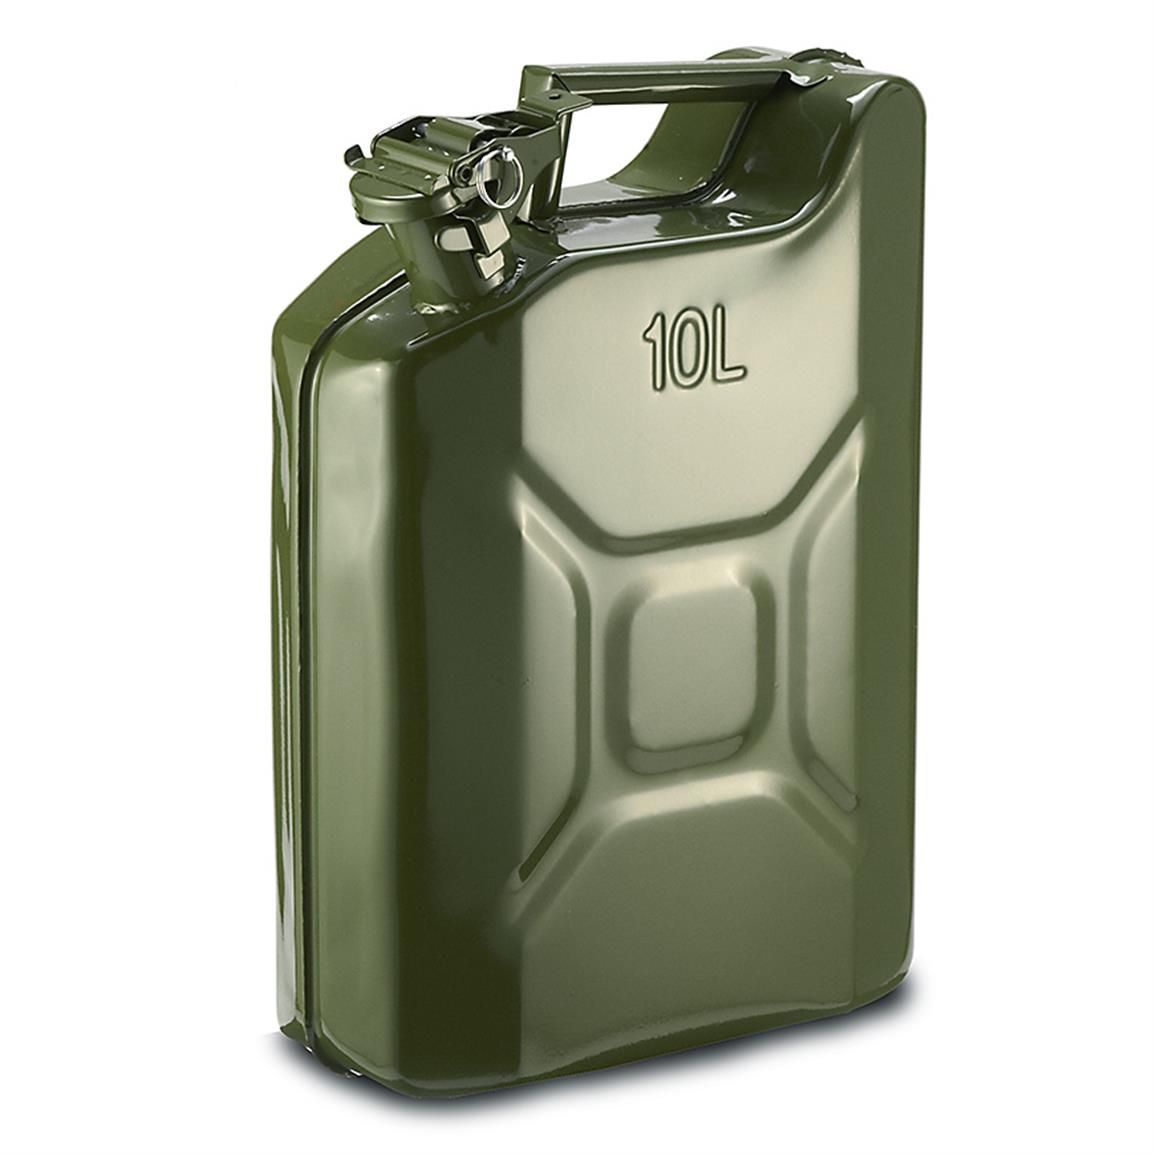 U S Military Style Reproduction Jerry Can 10 Liter 2 5 Gallon Jerry Can Military Surplus Military Fashion